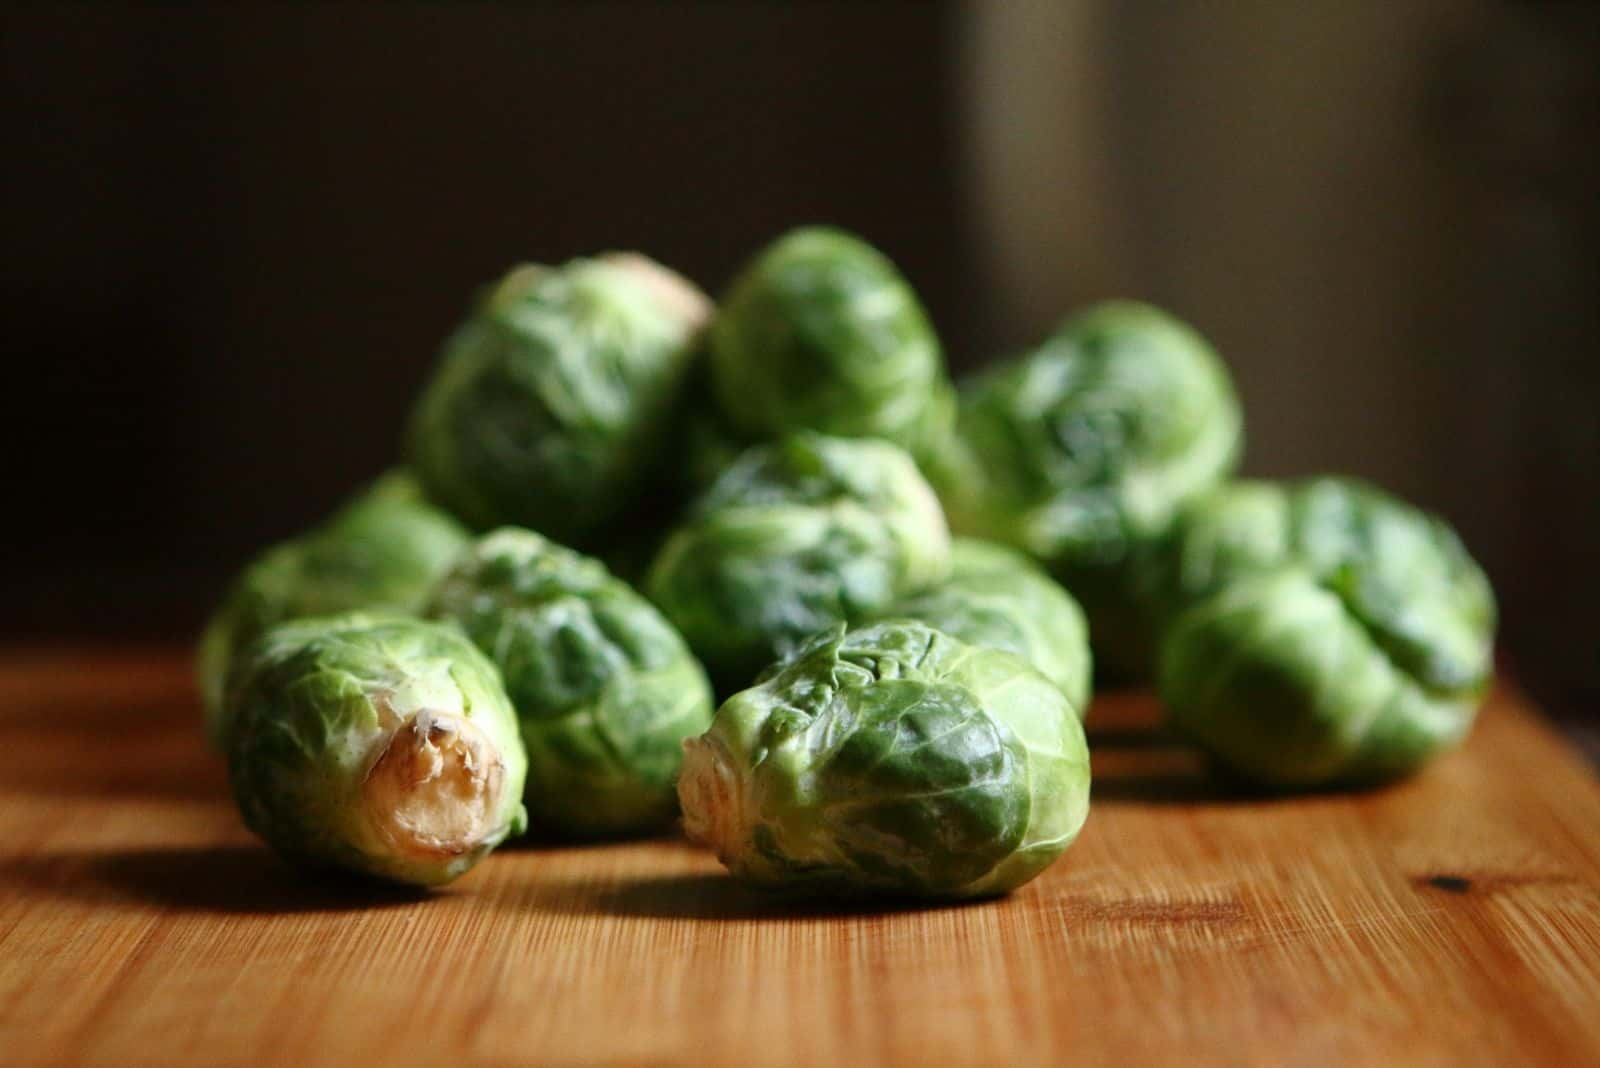 few brussel sprouts on top of the wooden table